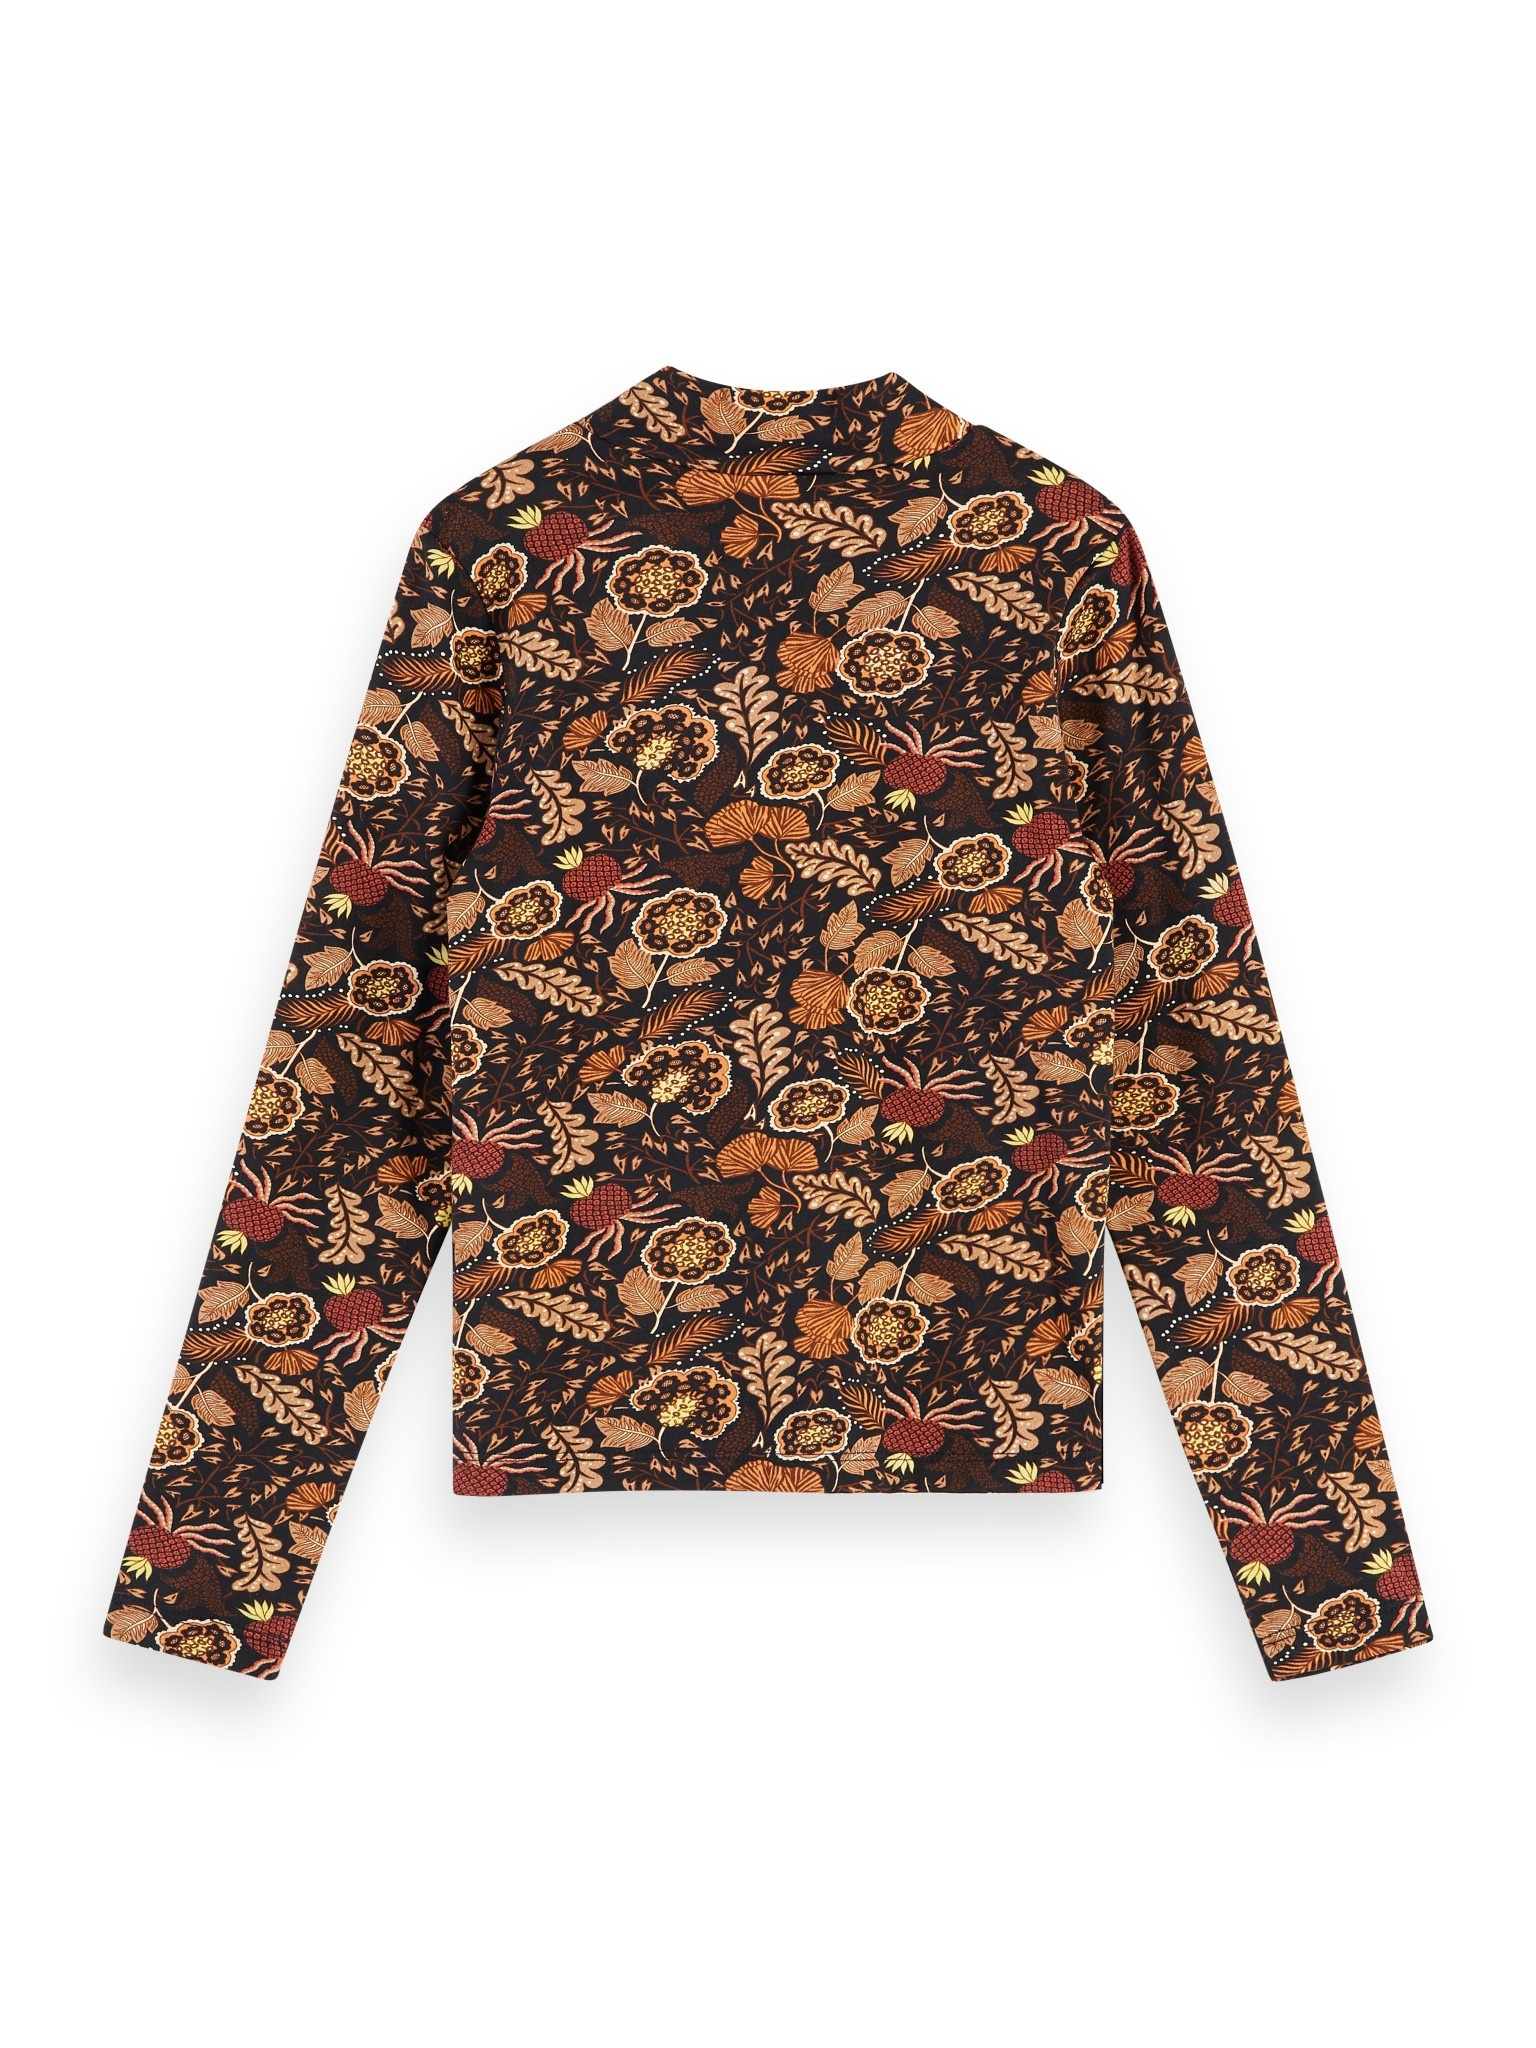 Scotch Rbelle Scotch - All-over printed long sleeve tee 0217, 158086